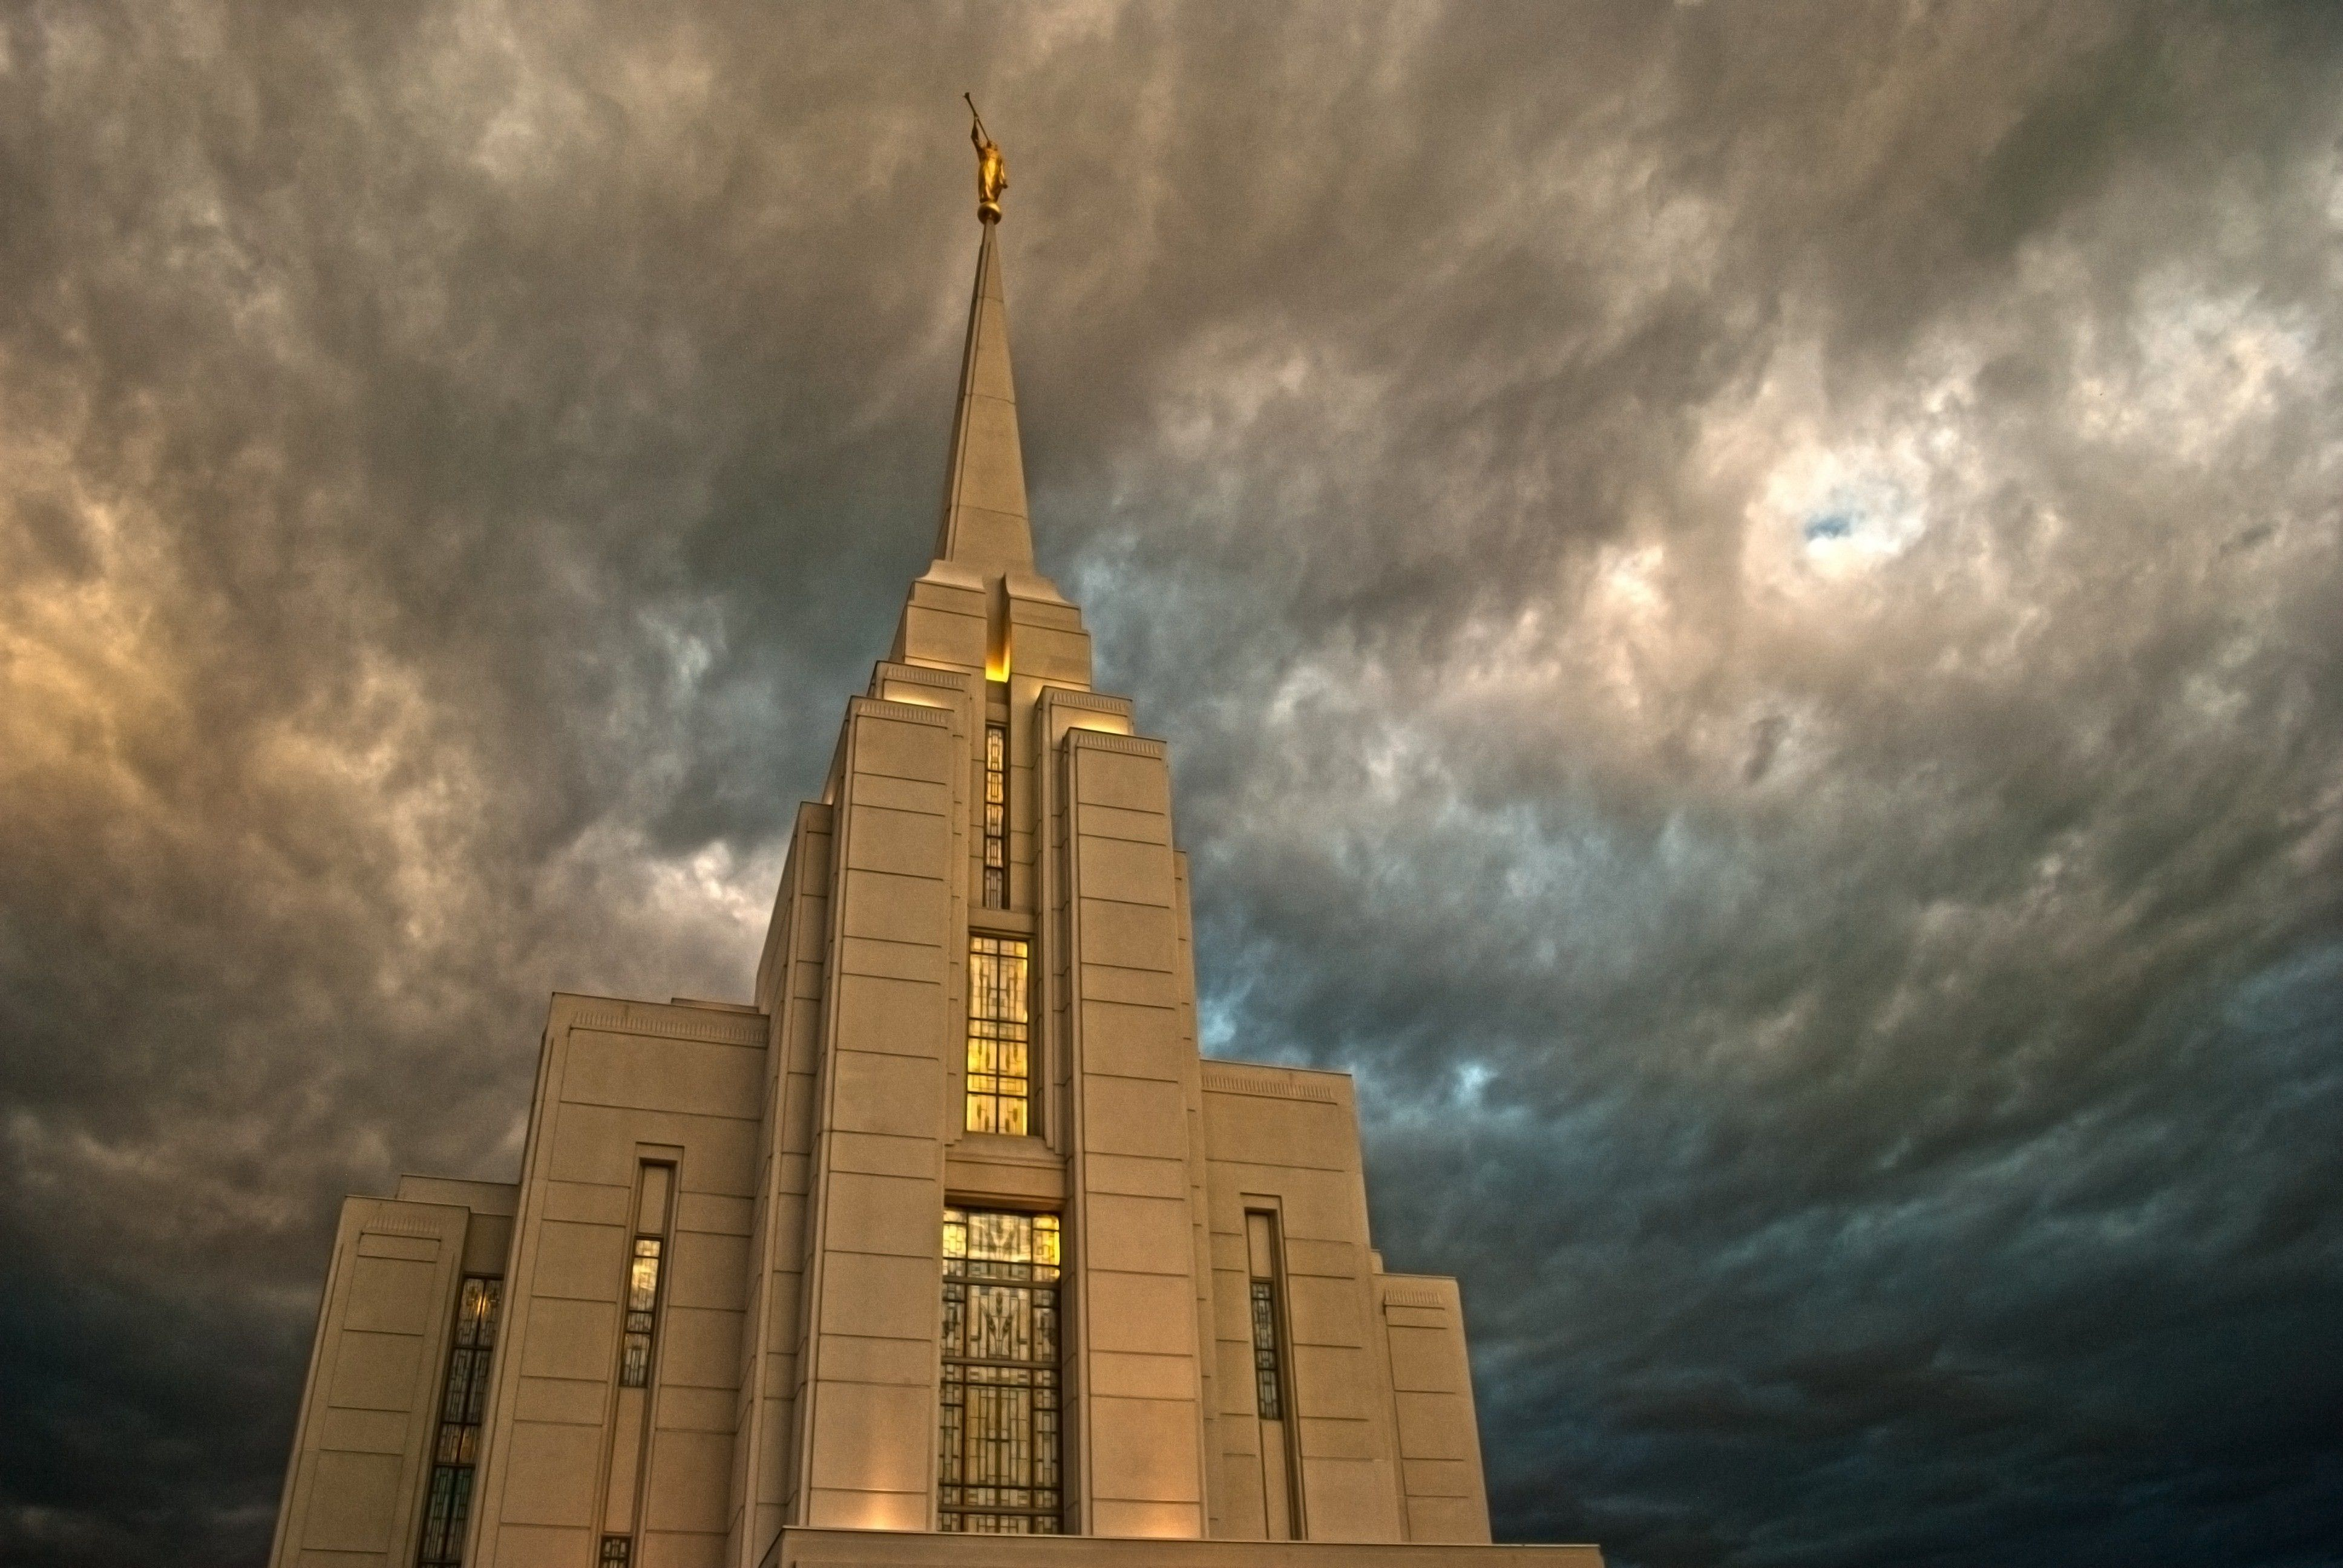 The Rexburg Idaho Temple during a storm.